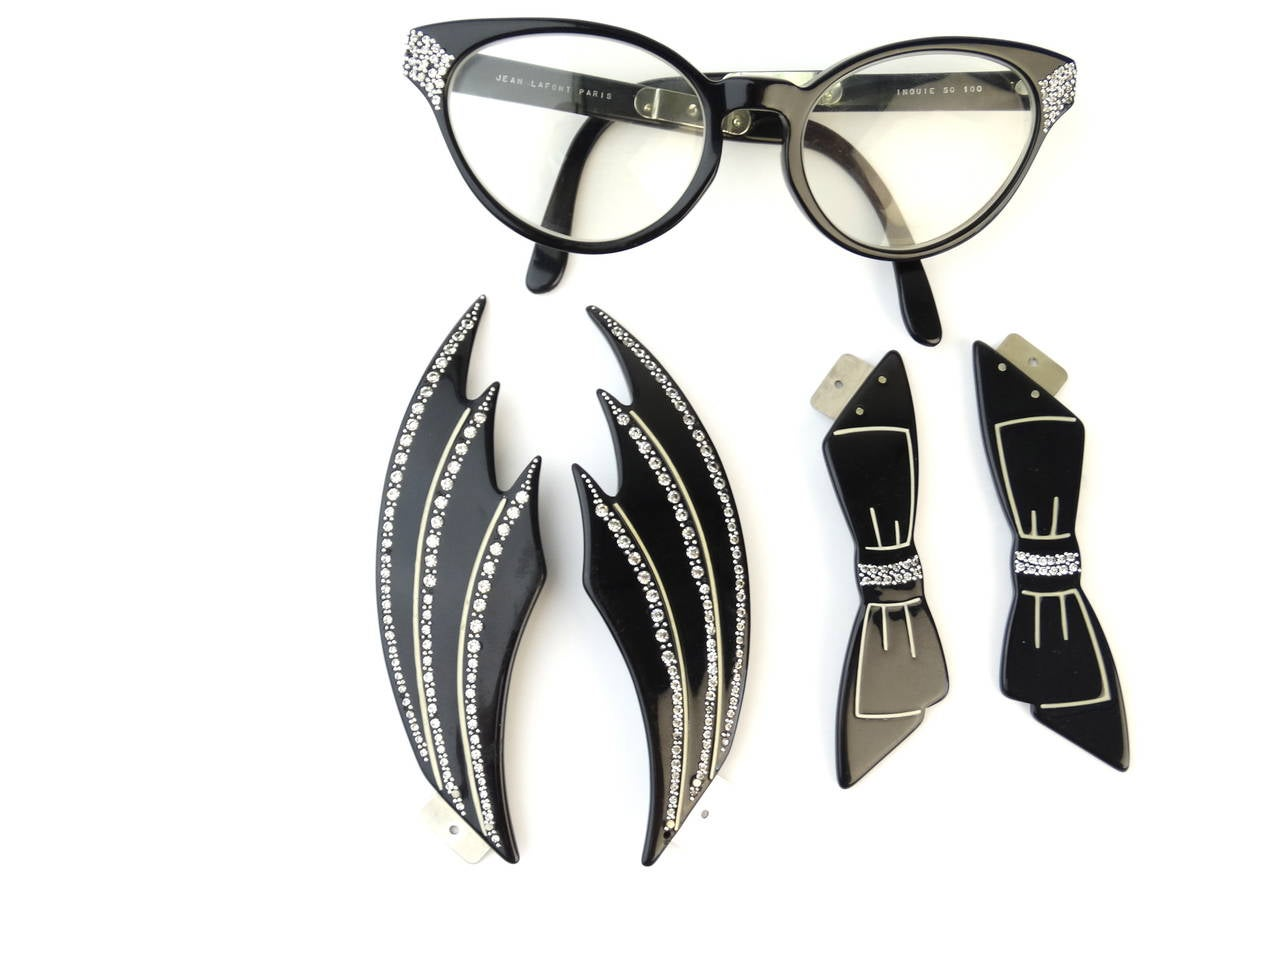 Featured a beautiful and unique pair of Jean Lafont eyeglasses circa 1960s. These eyeglasses have a unquie feature you have the option of wearing them as a classic cat eye frame or attach a pair of rhinestone wings or bows to the arms. Super